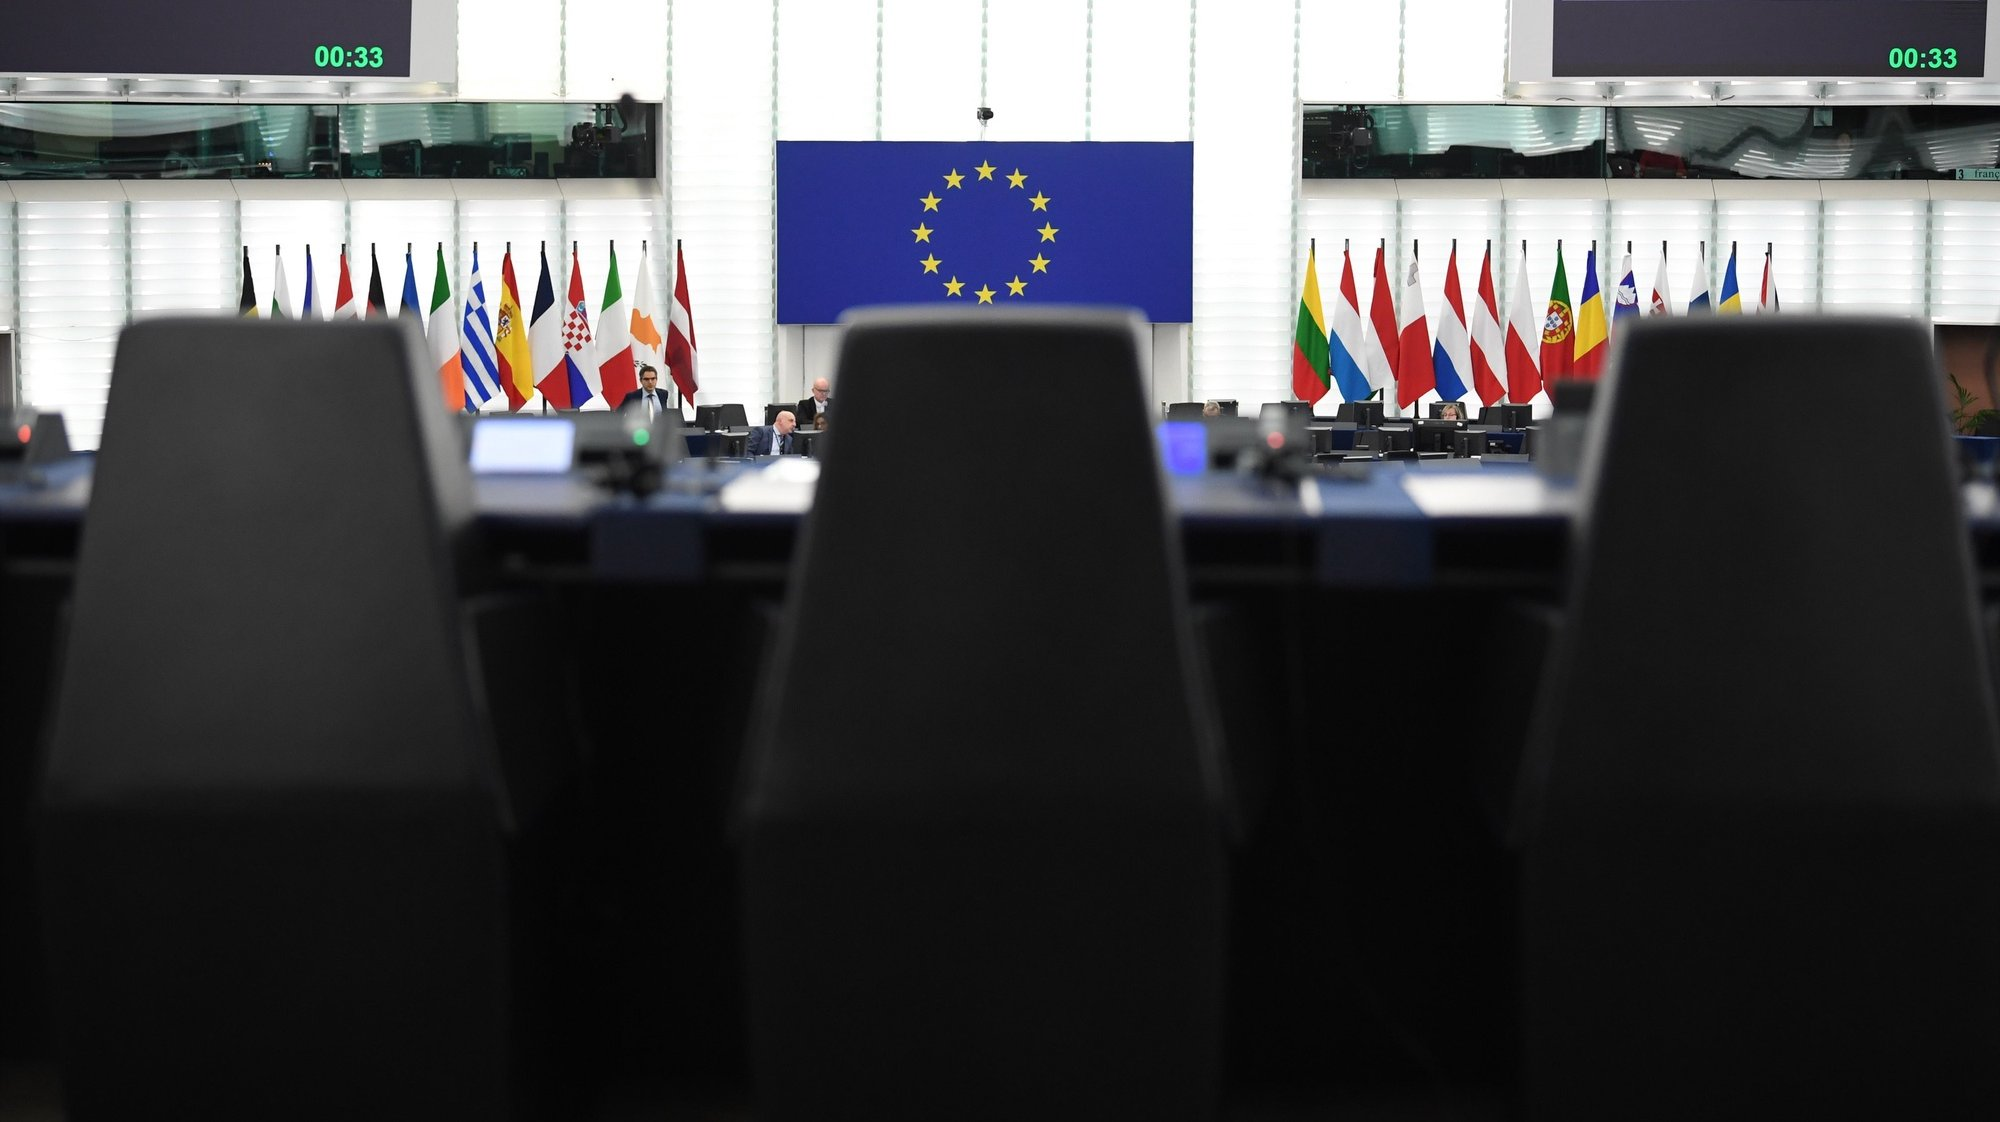 epa08127800 Empty chairs are in front of the European flag before the debate on the consequences of the latest confrontation between the US and Iran at the European Parliament in Strasbourg, France, 14 January 2020.  EPA/PATRICK SEEGER